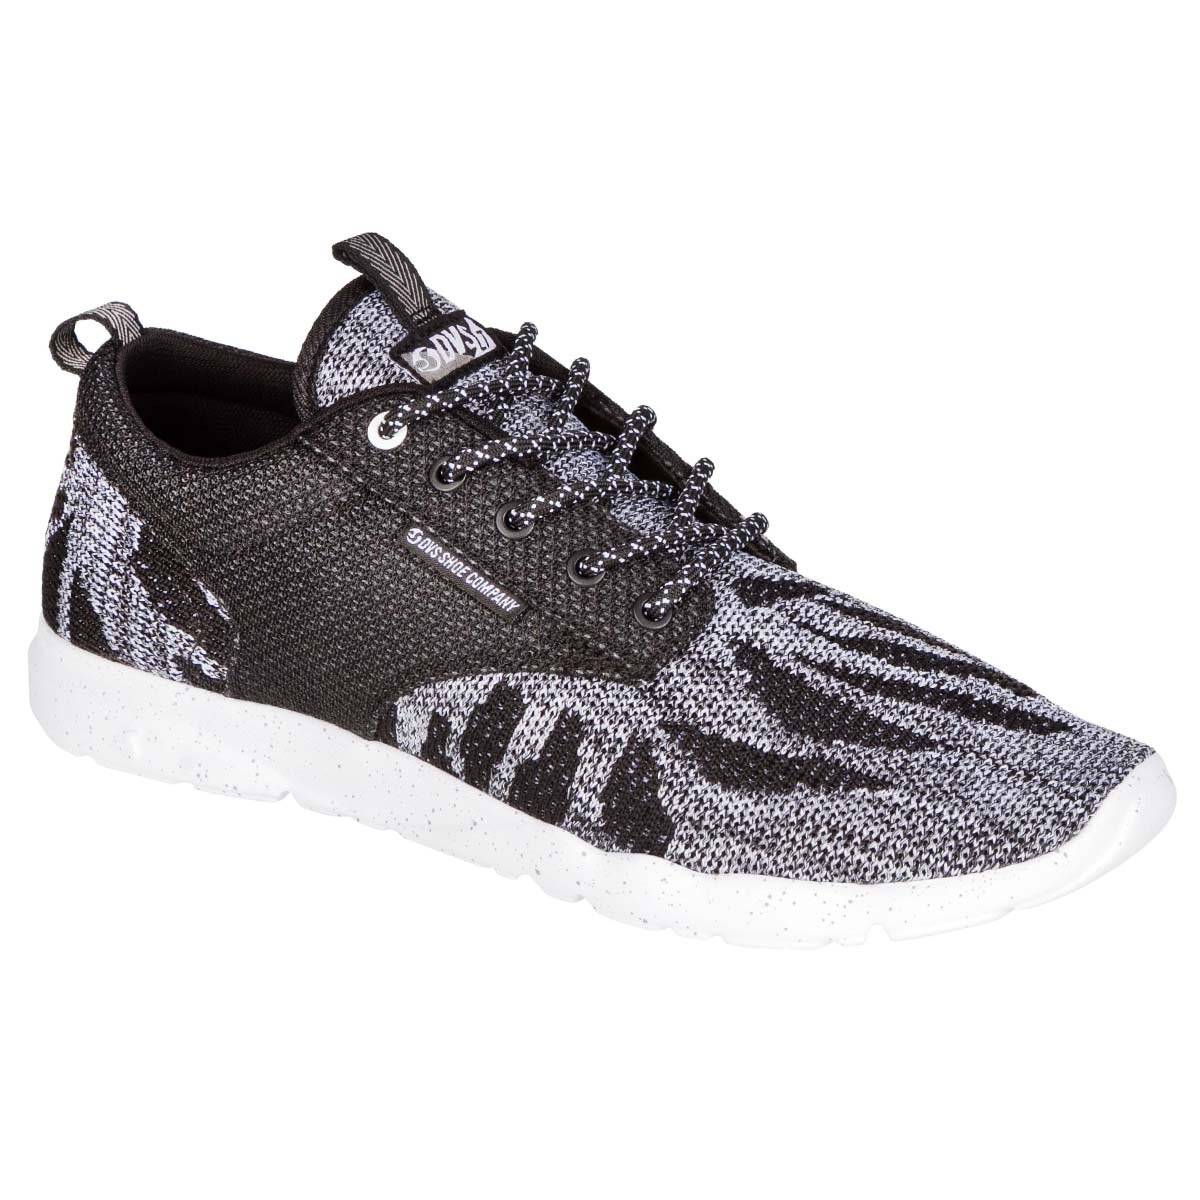 DVS Schuhe Premier 2.0+ Black White Knit